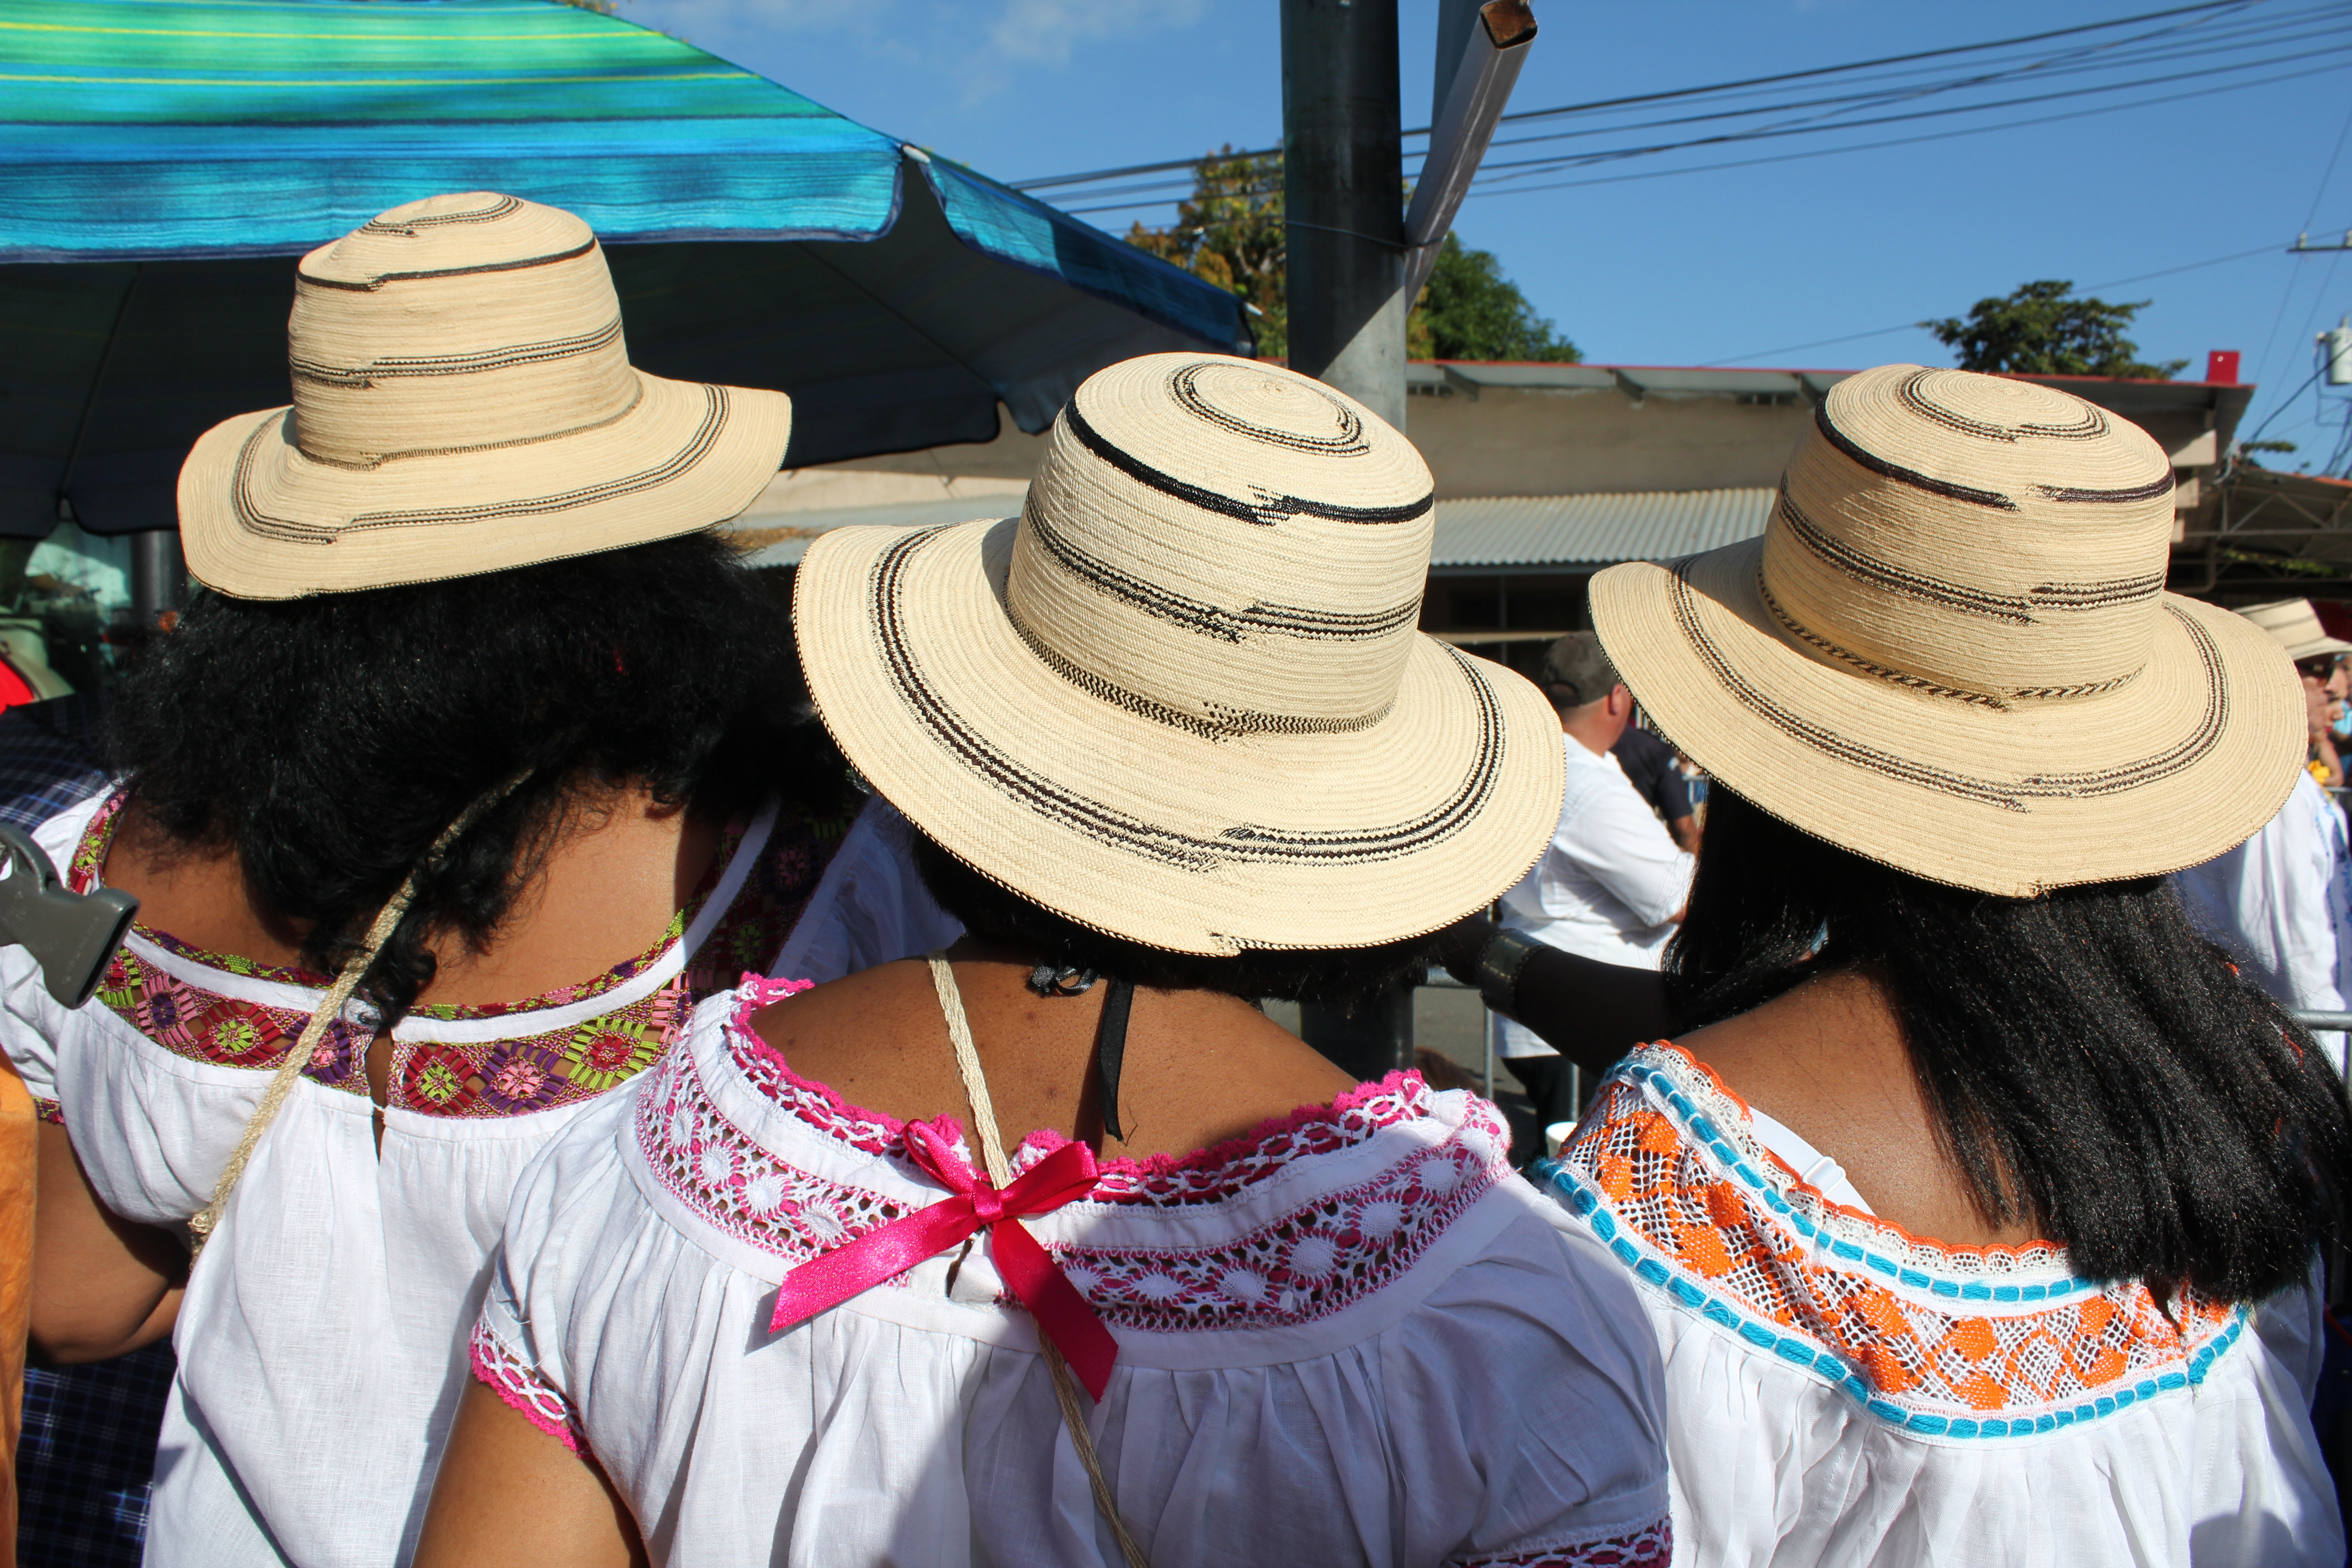 watching-the-action-pollera-parade A Panama Road Trip Panama Panama Fairs and Festivals